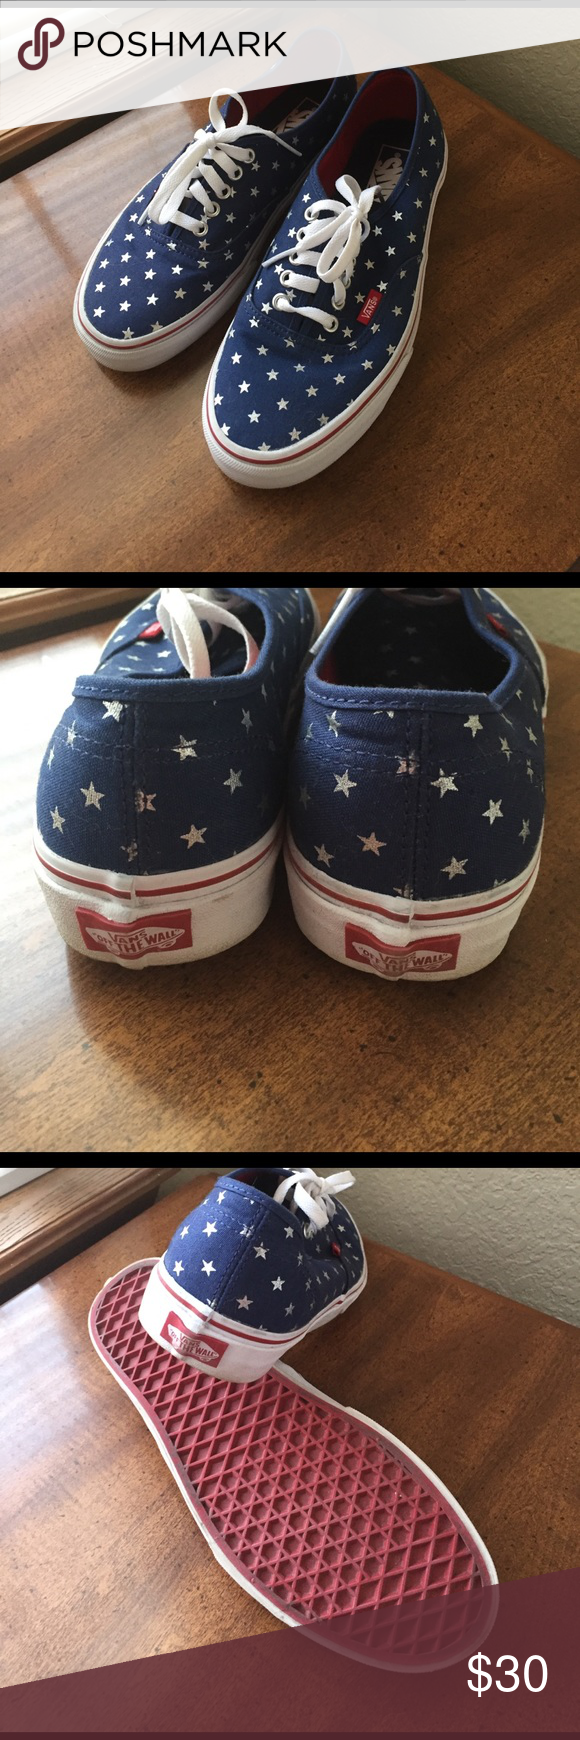 Americana Vans size 9 Practically new sneakers. Worn one time out shopping.  Blue with silver stars and red soles. Clean white laces. b0b31b1bdc3